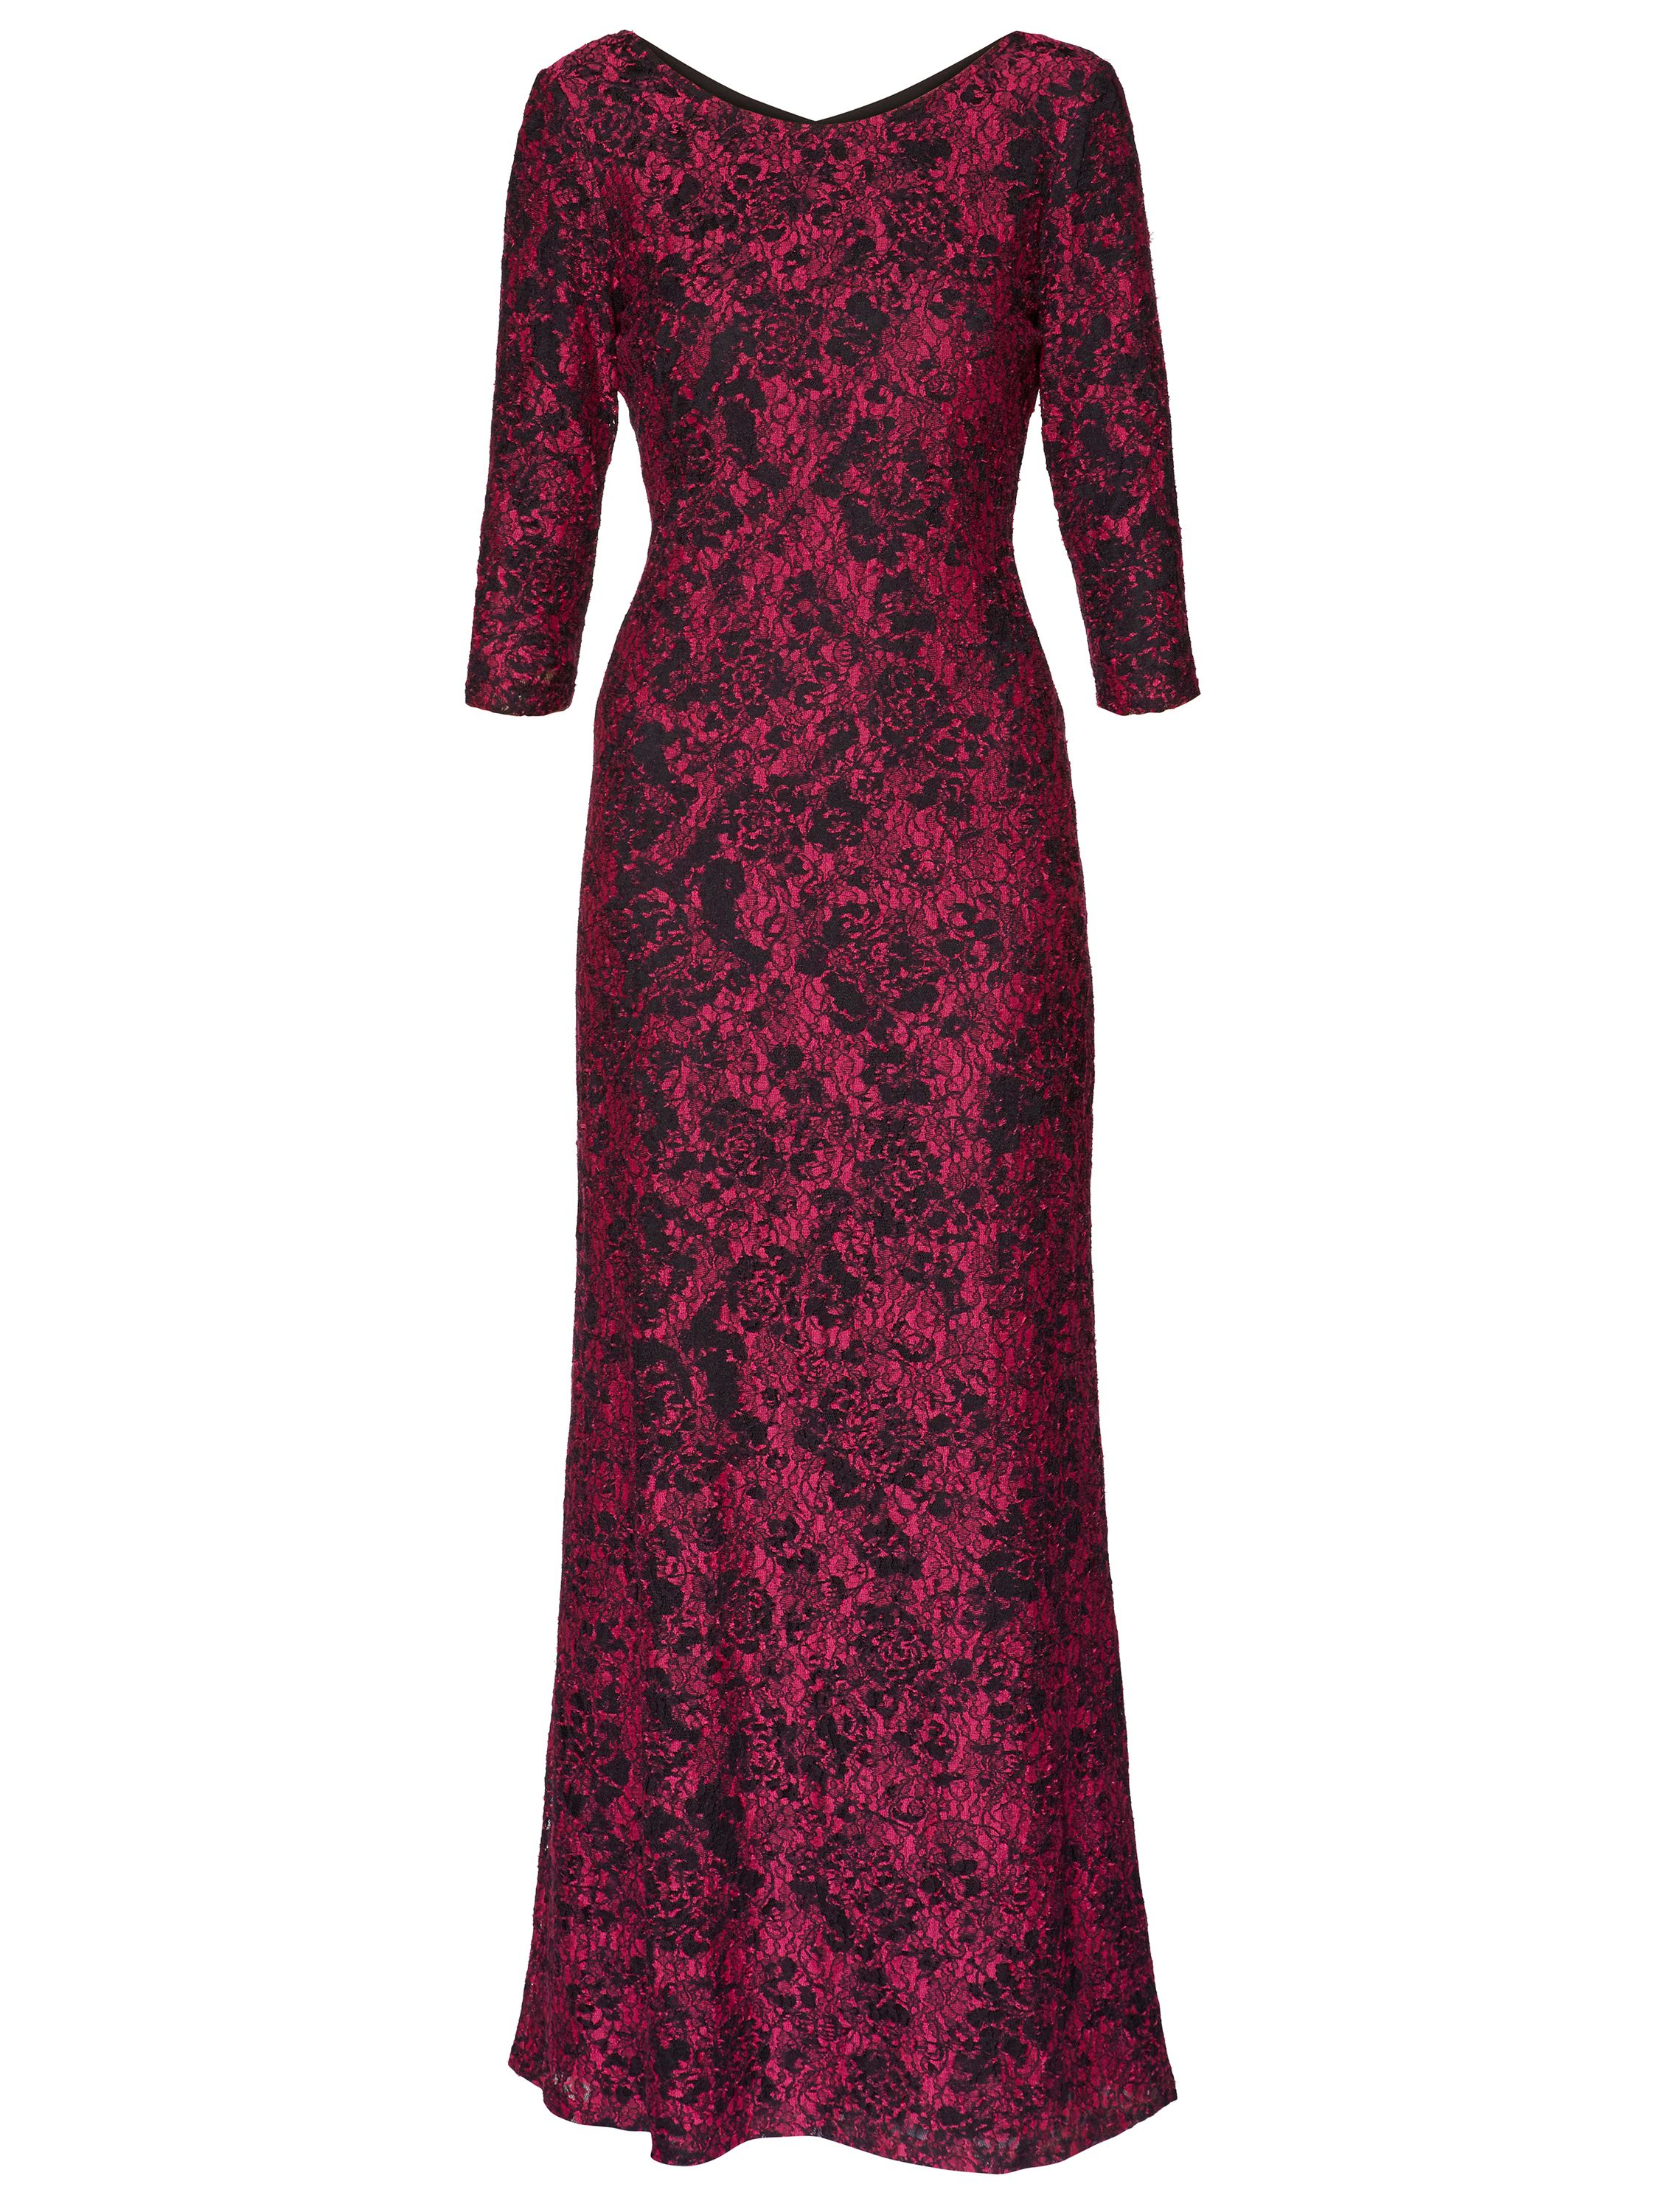 Gina Bacconi Phyllis Lace Maxi Dress, Pink